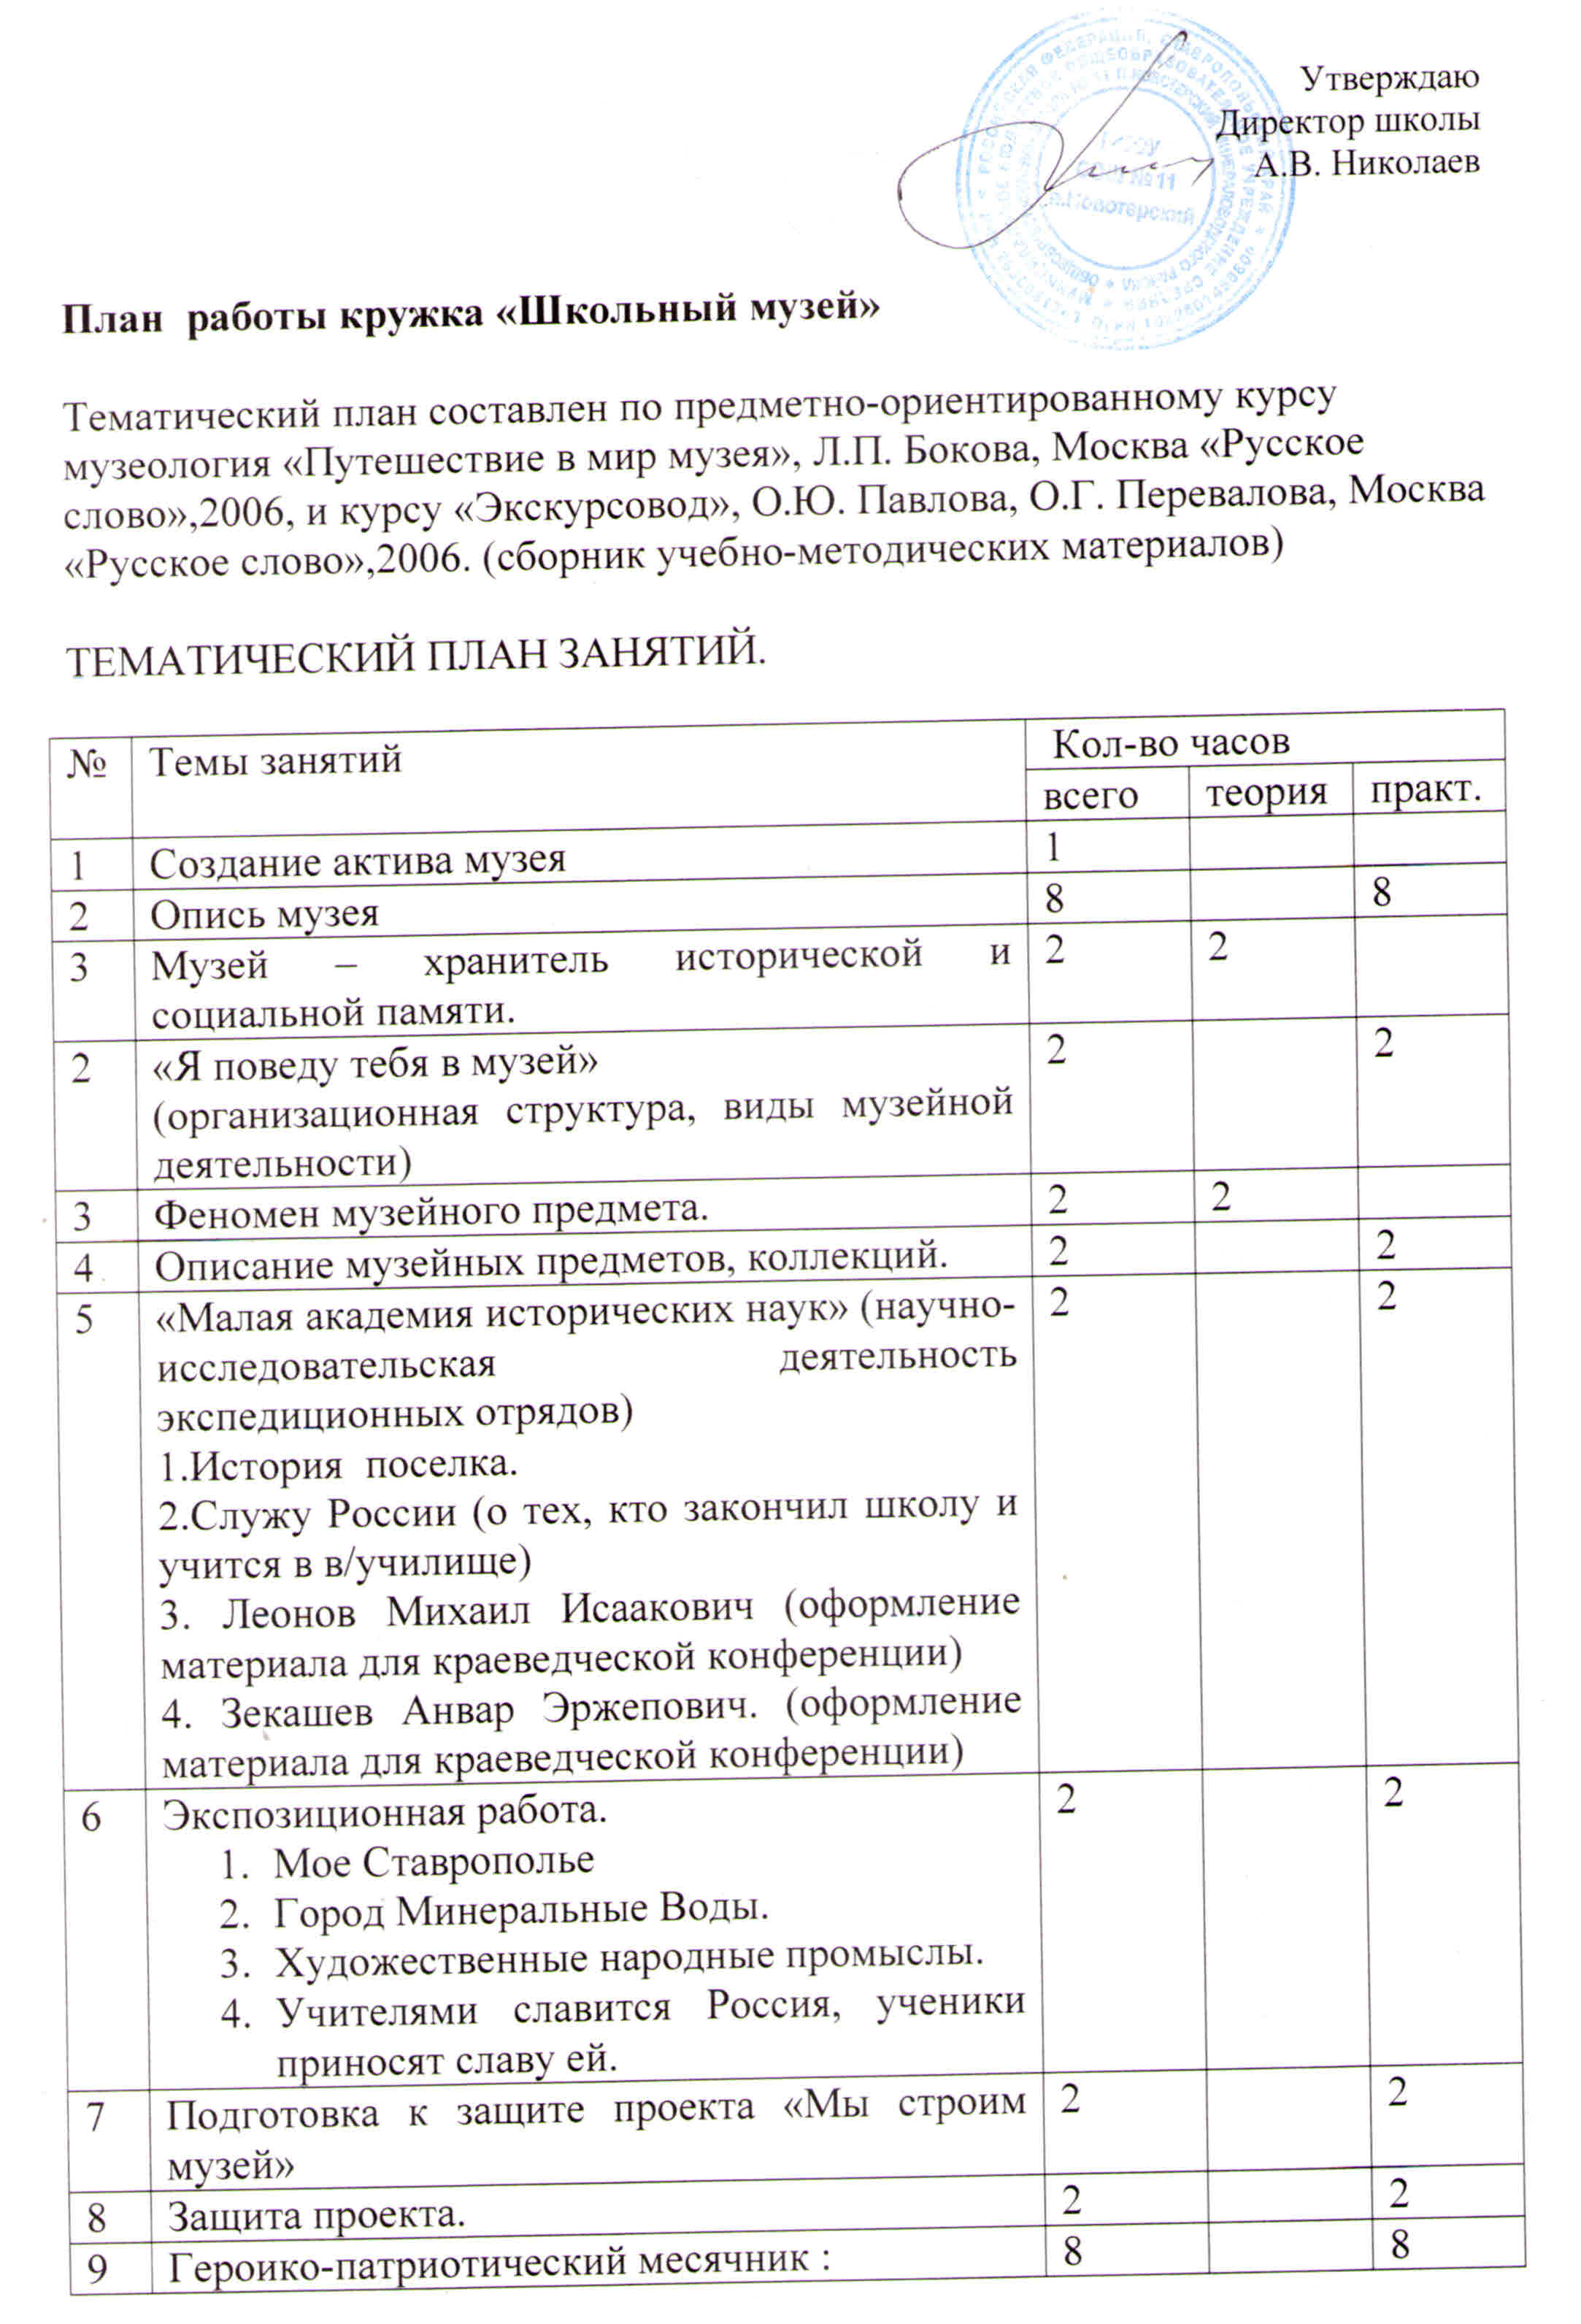 C:\Users\Сергей\Desktop\Document_25.jpg